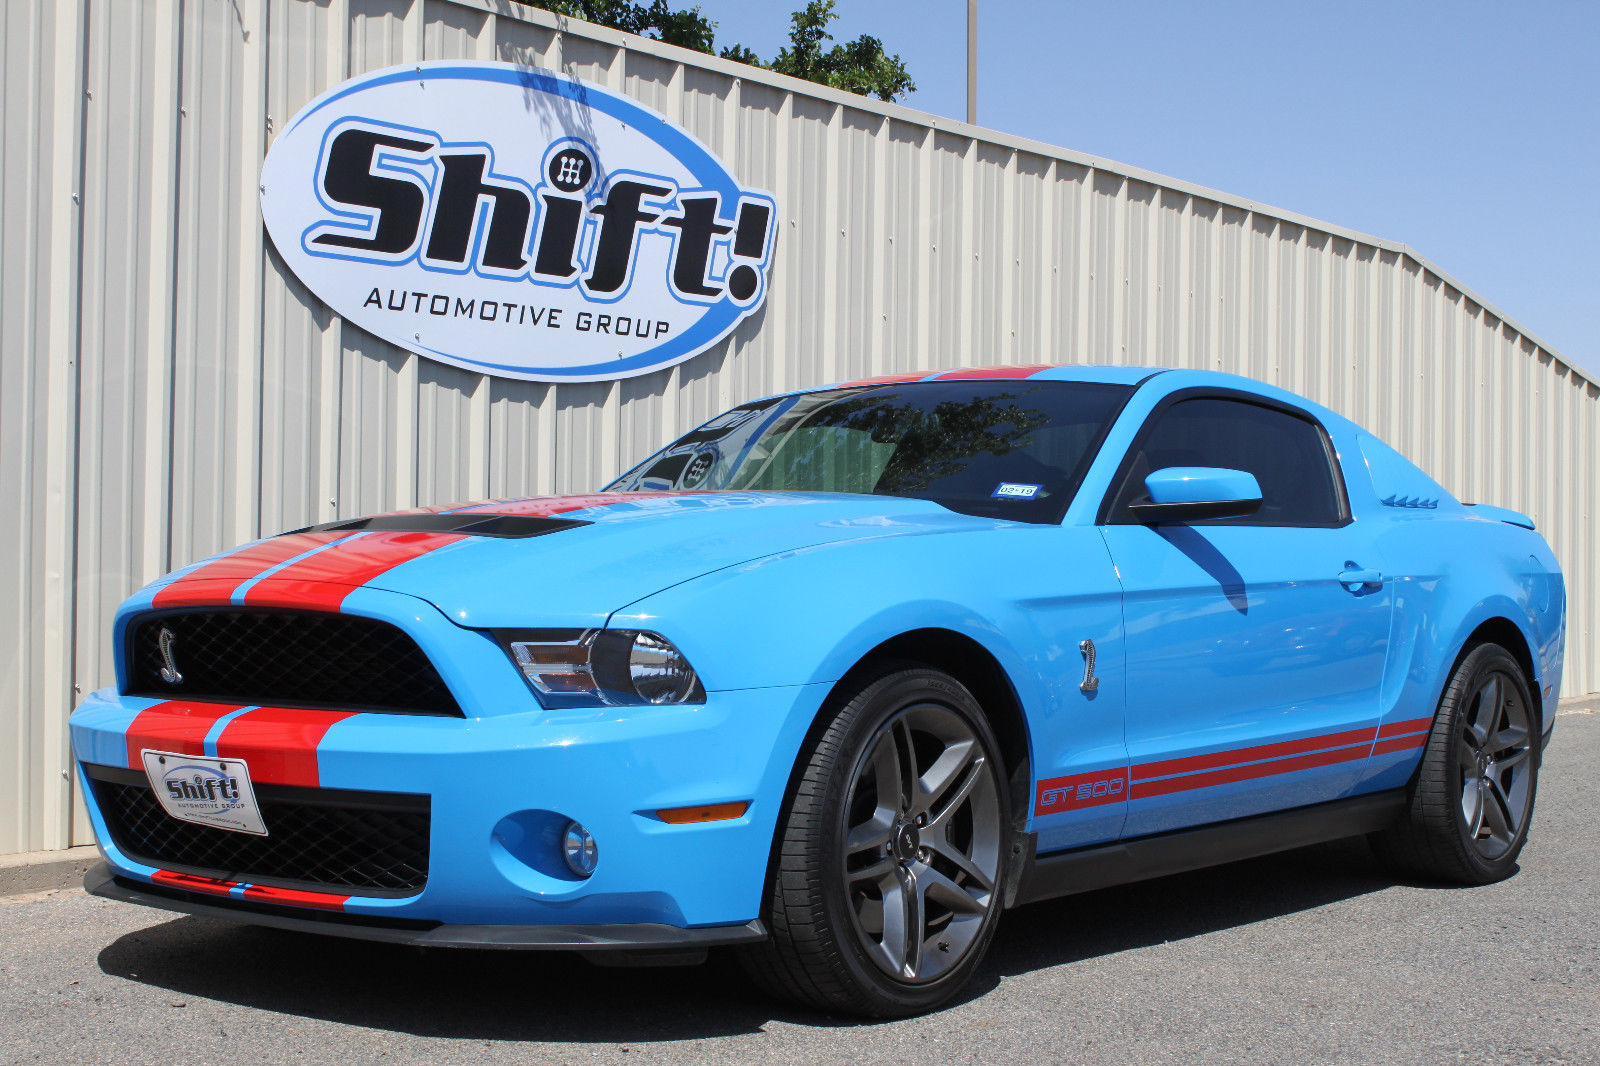 Great 2010 Ford Mustang Shelby Gt500 Only 12k Miles Grabber Blue Red Stripes 2018 2019